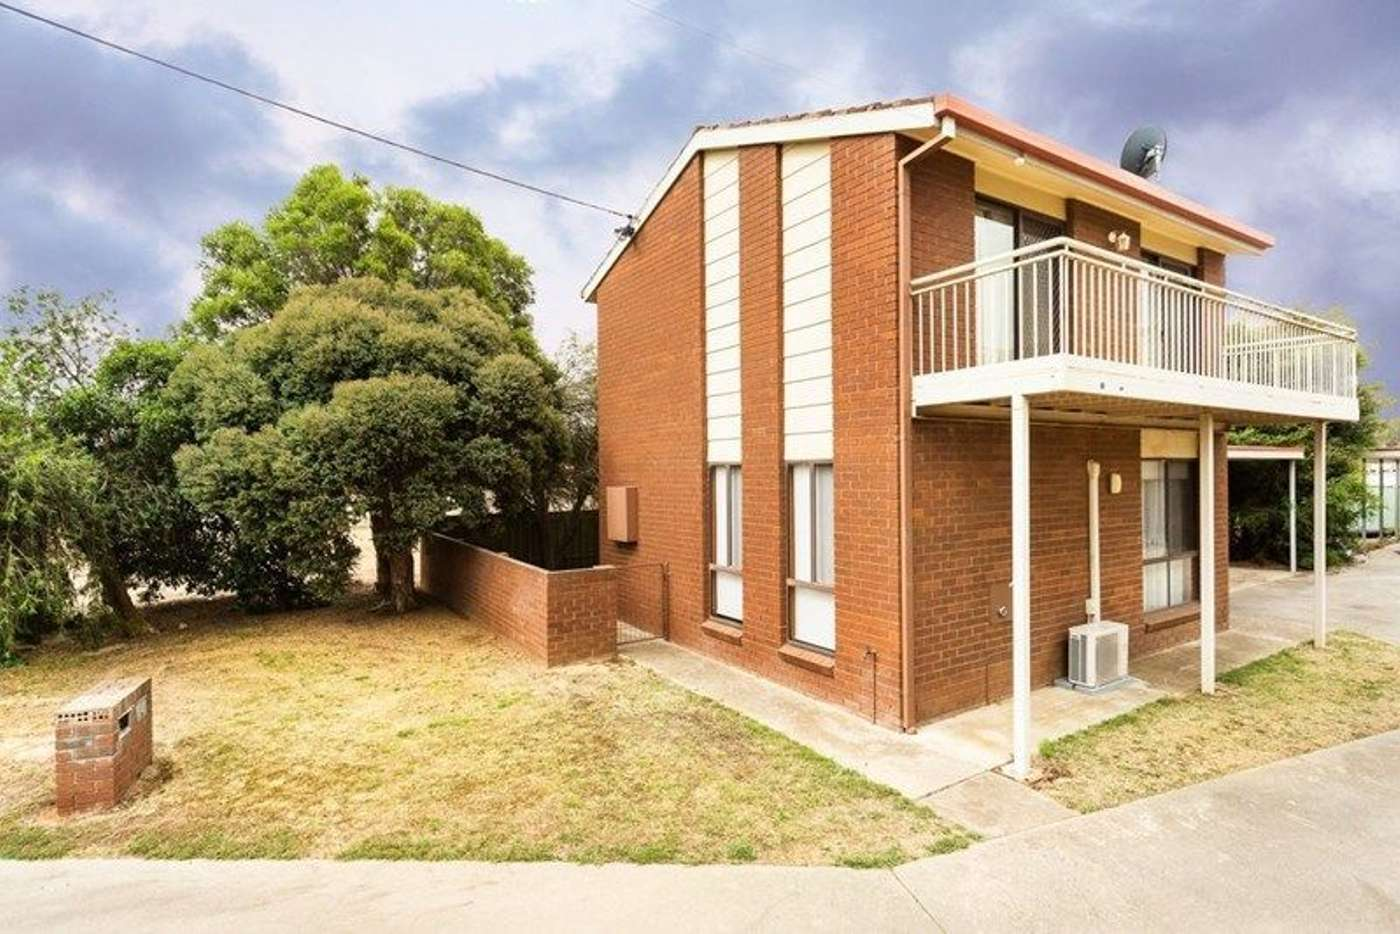 Main view of Homely unit listing, 1/4 Sunnyside Crescent, Walla Walla NSW 2659